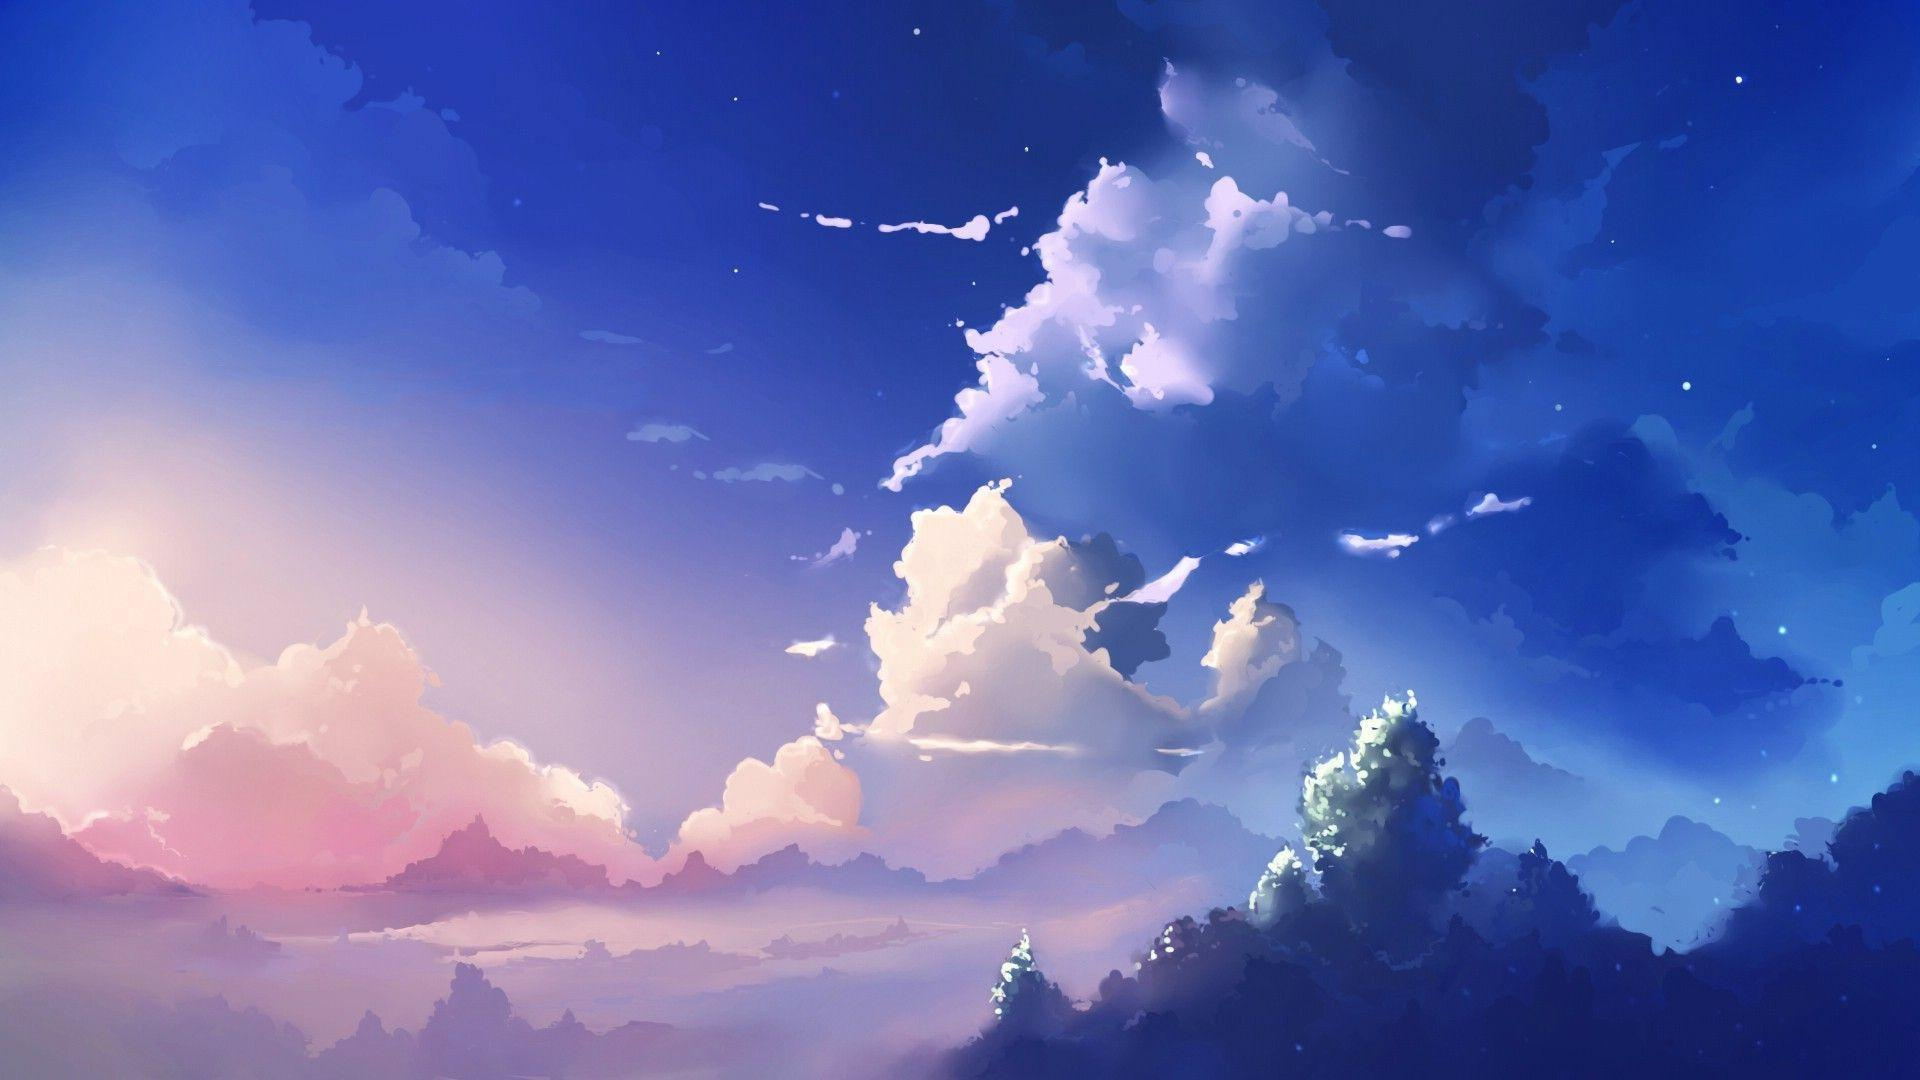 Anime Scenery Wallpaper HD Resolution